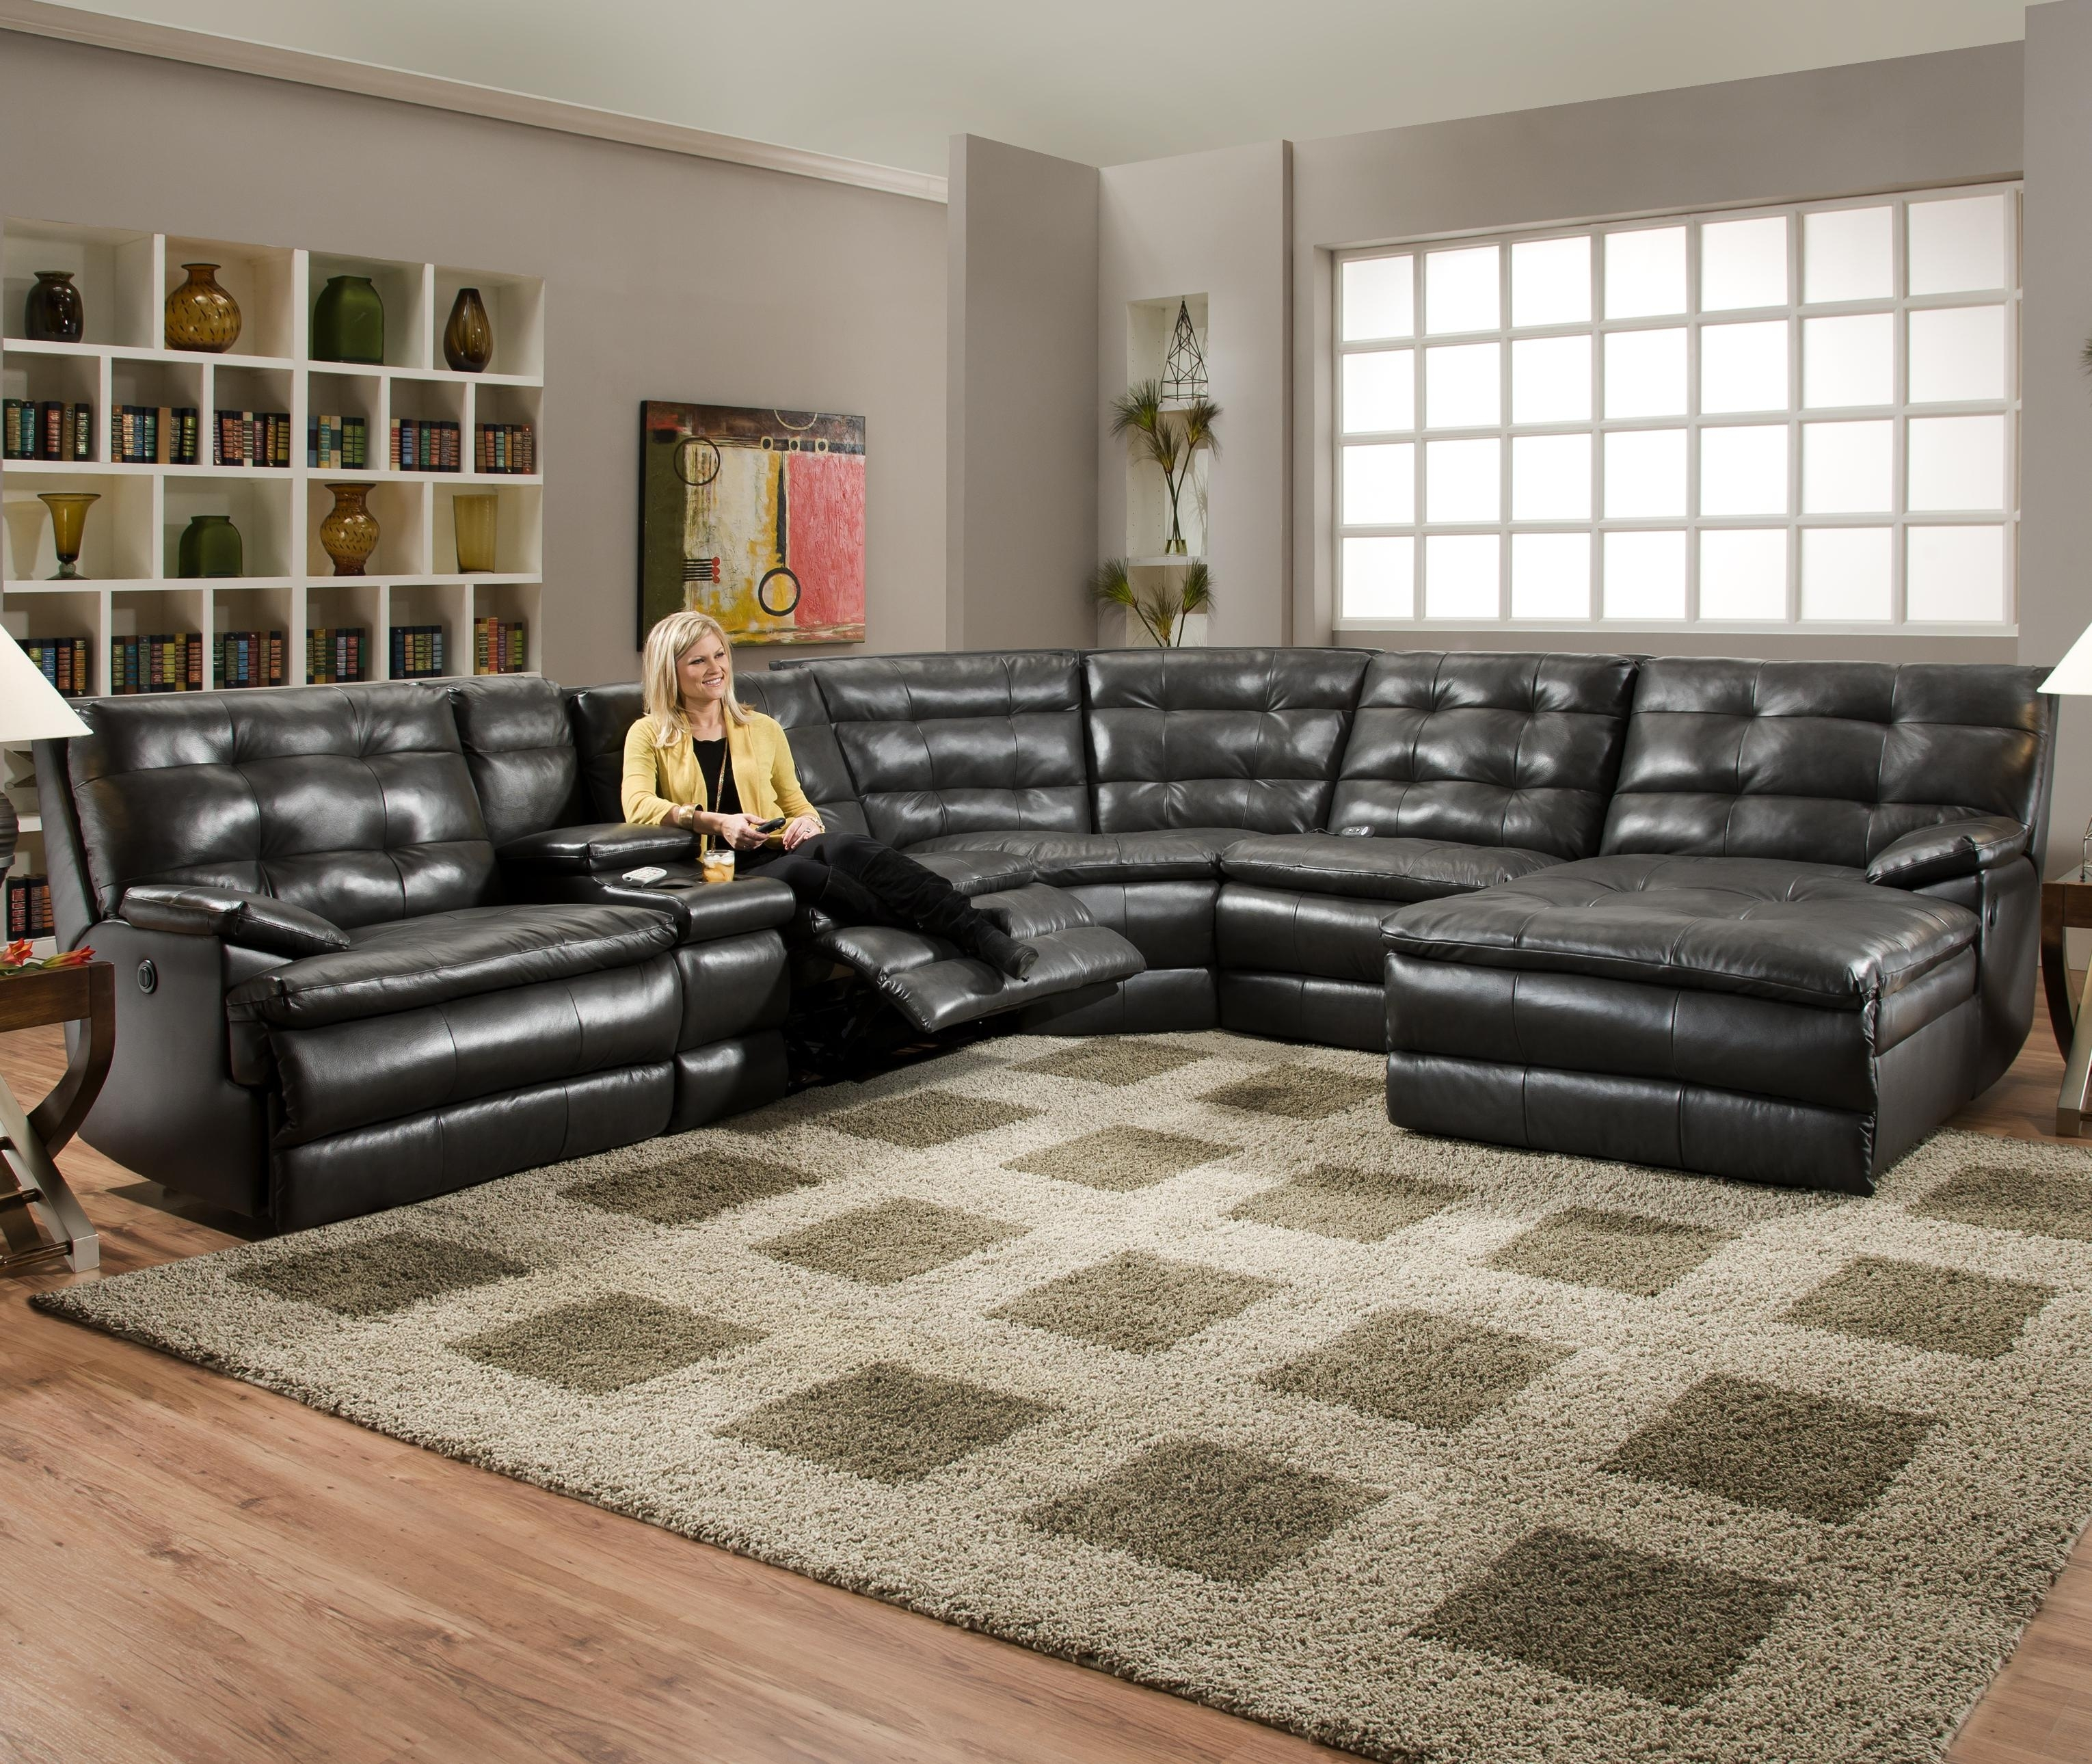 Luxurious Tufted Leather Sectional Sofa In Classy Black Color With for Sectional Sofas In Stock (Image 4 of 10)